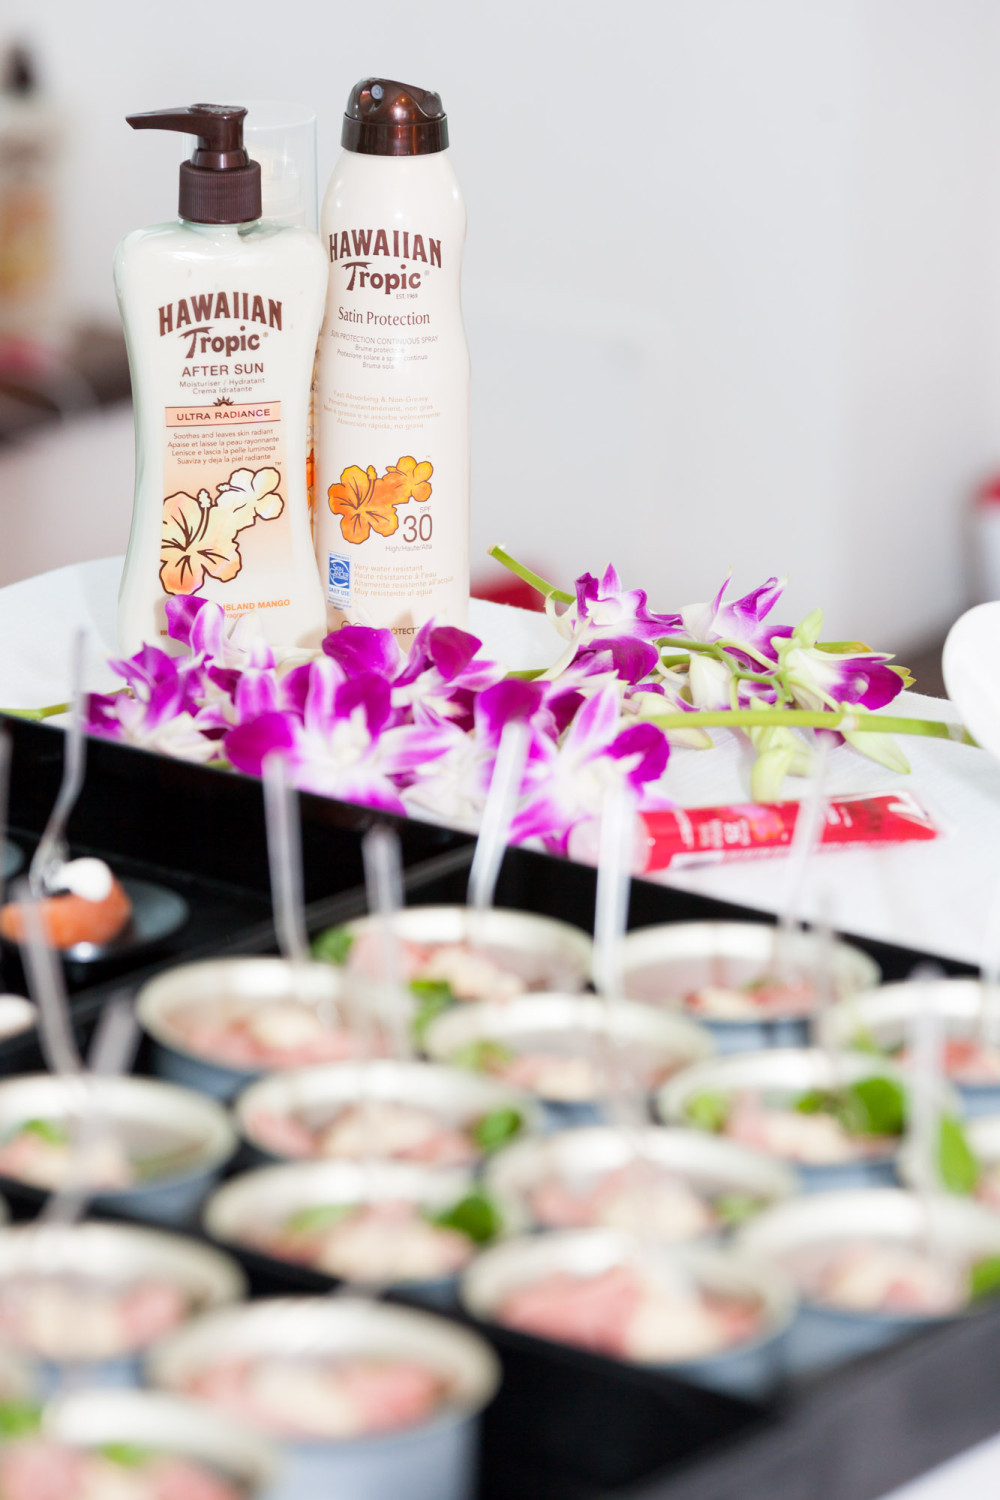 CREME PROTEZIONE SOLARE HAWAIIAN TROPIC EVENTO PRESS DAY